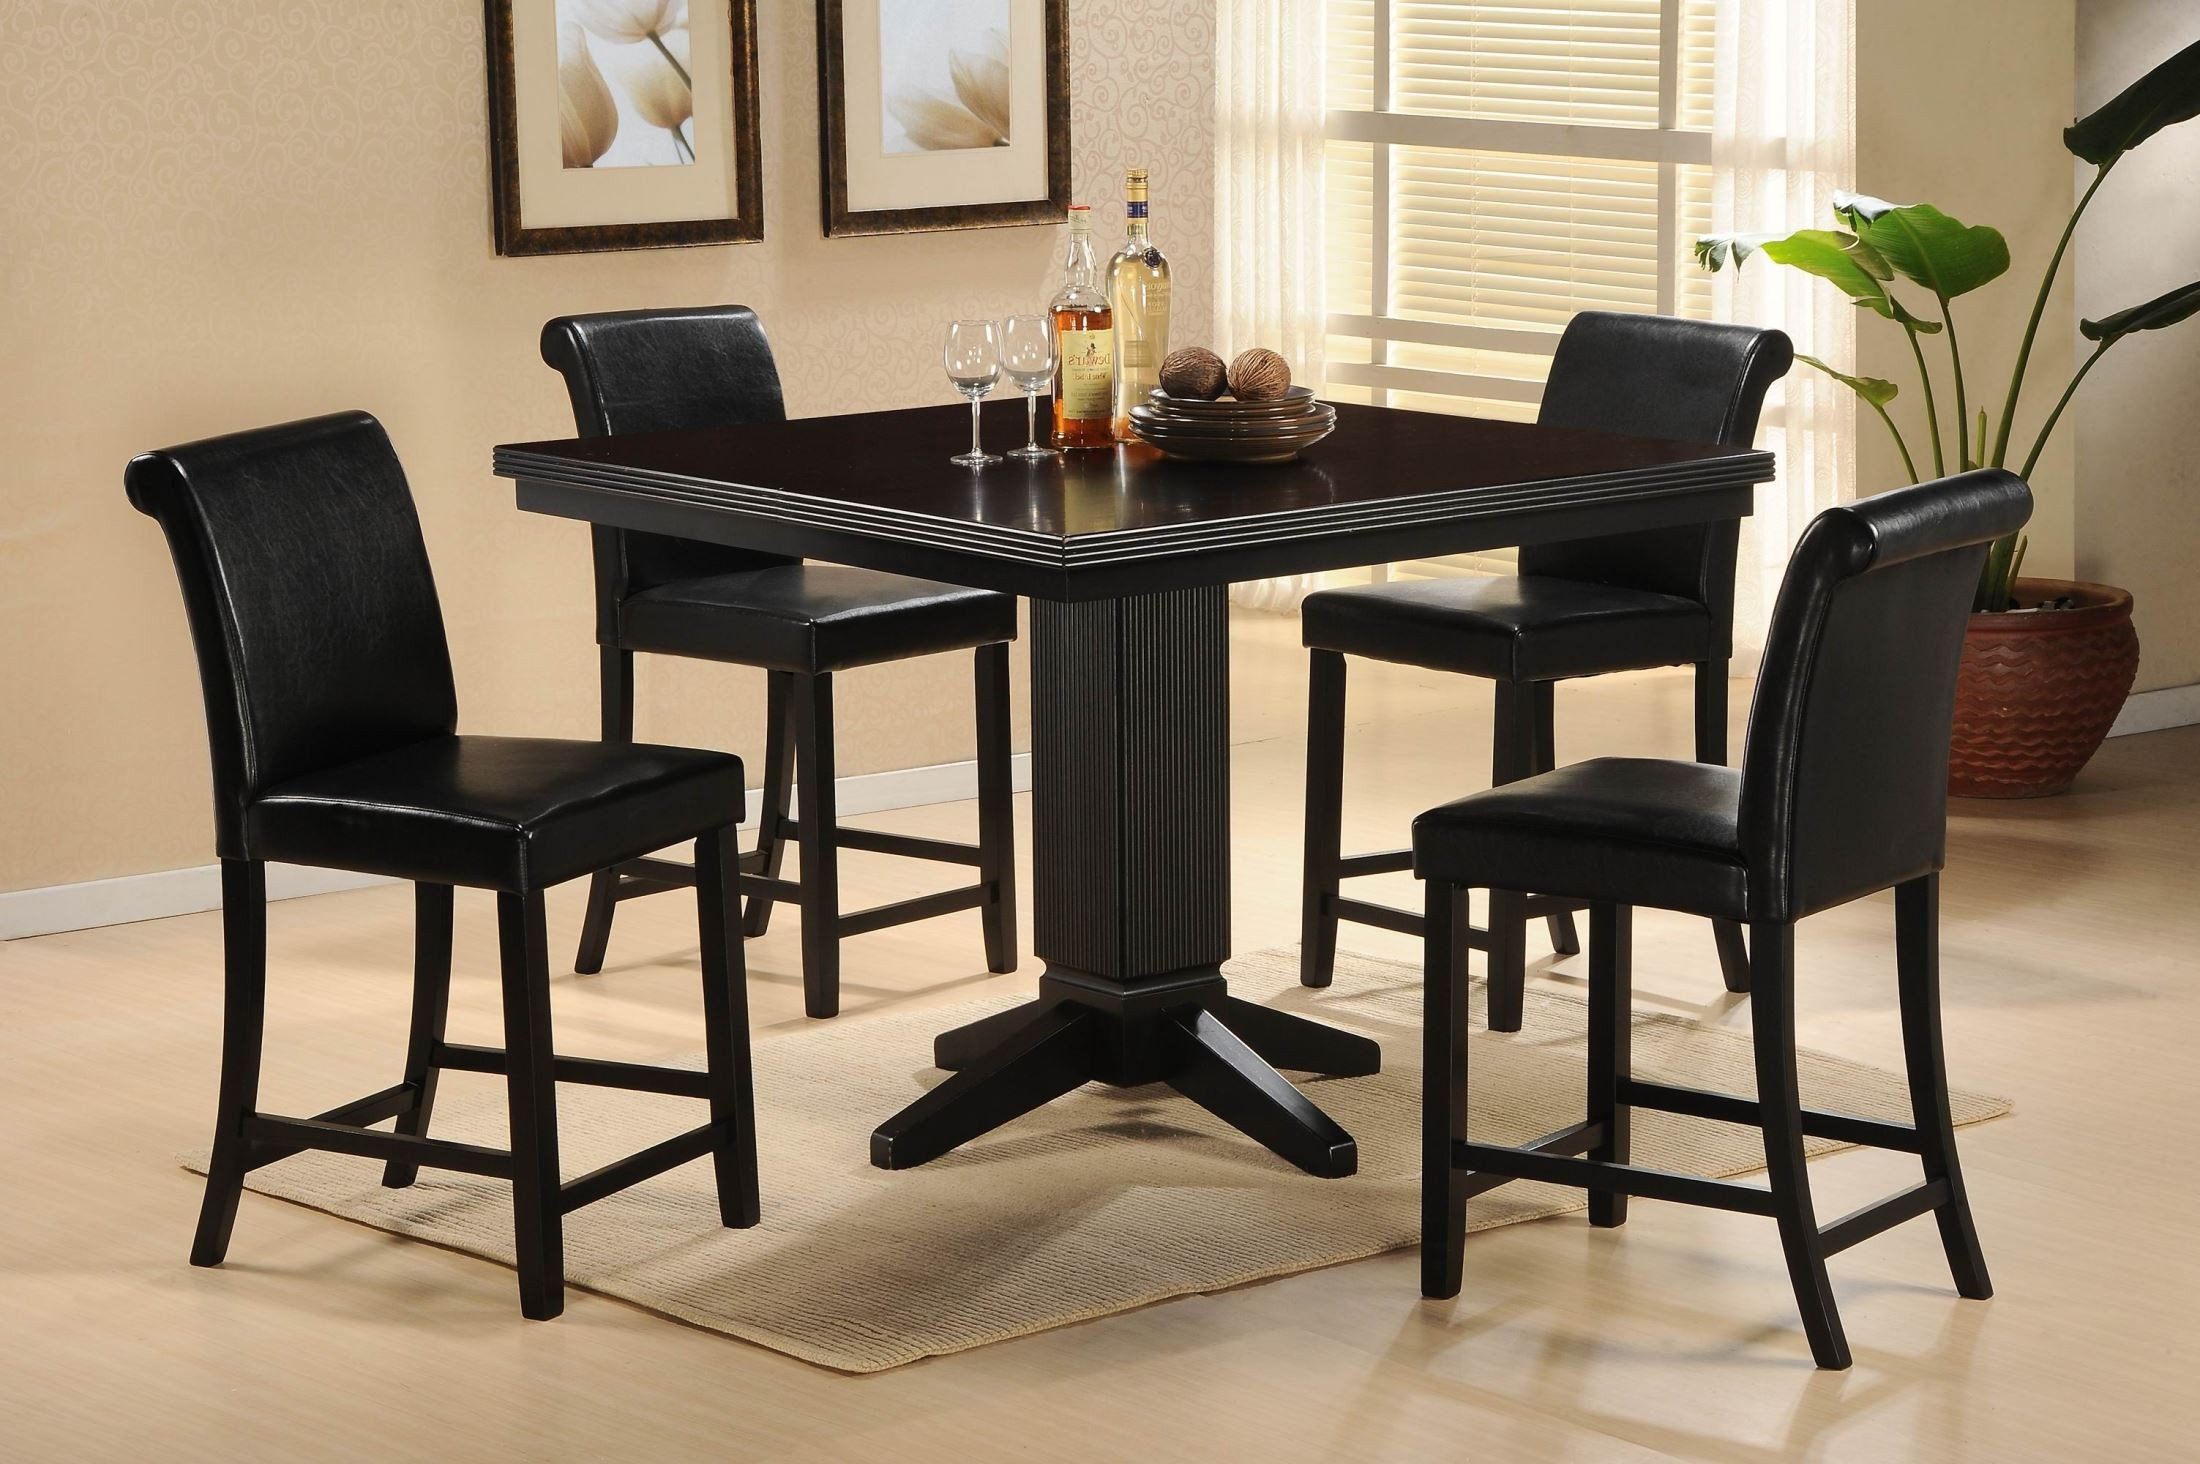 Table Height 36: Papario Nook Counter Height Dining Table From Homelegance